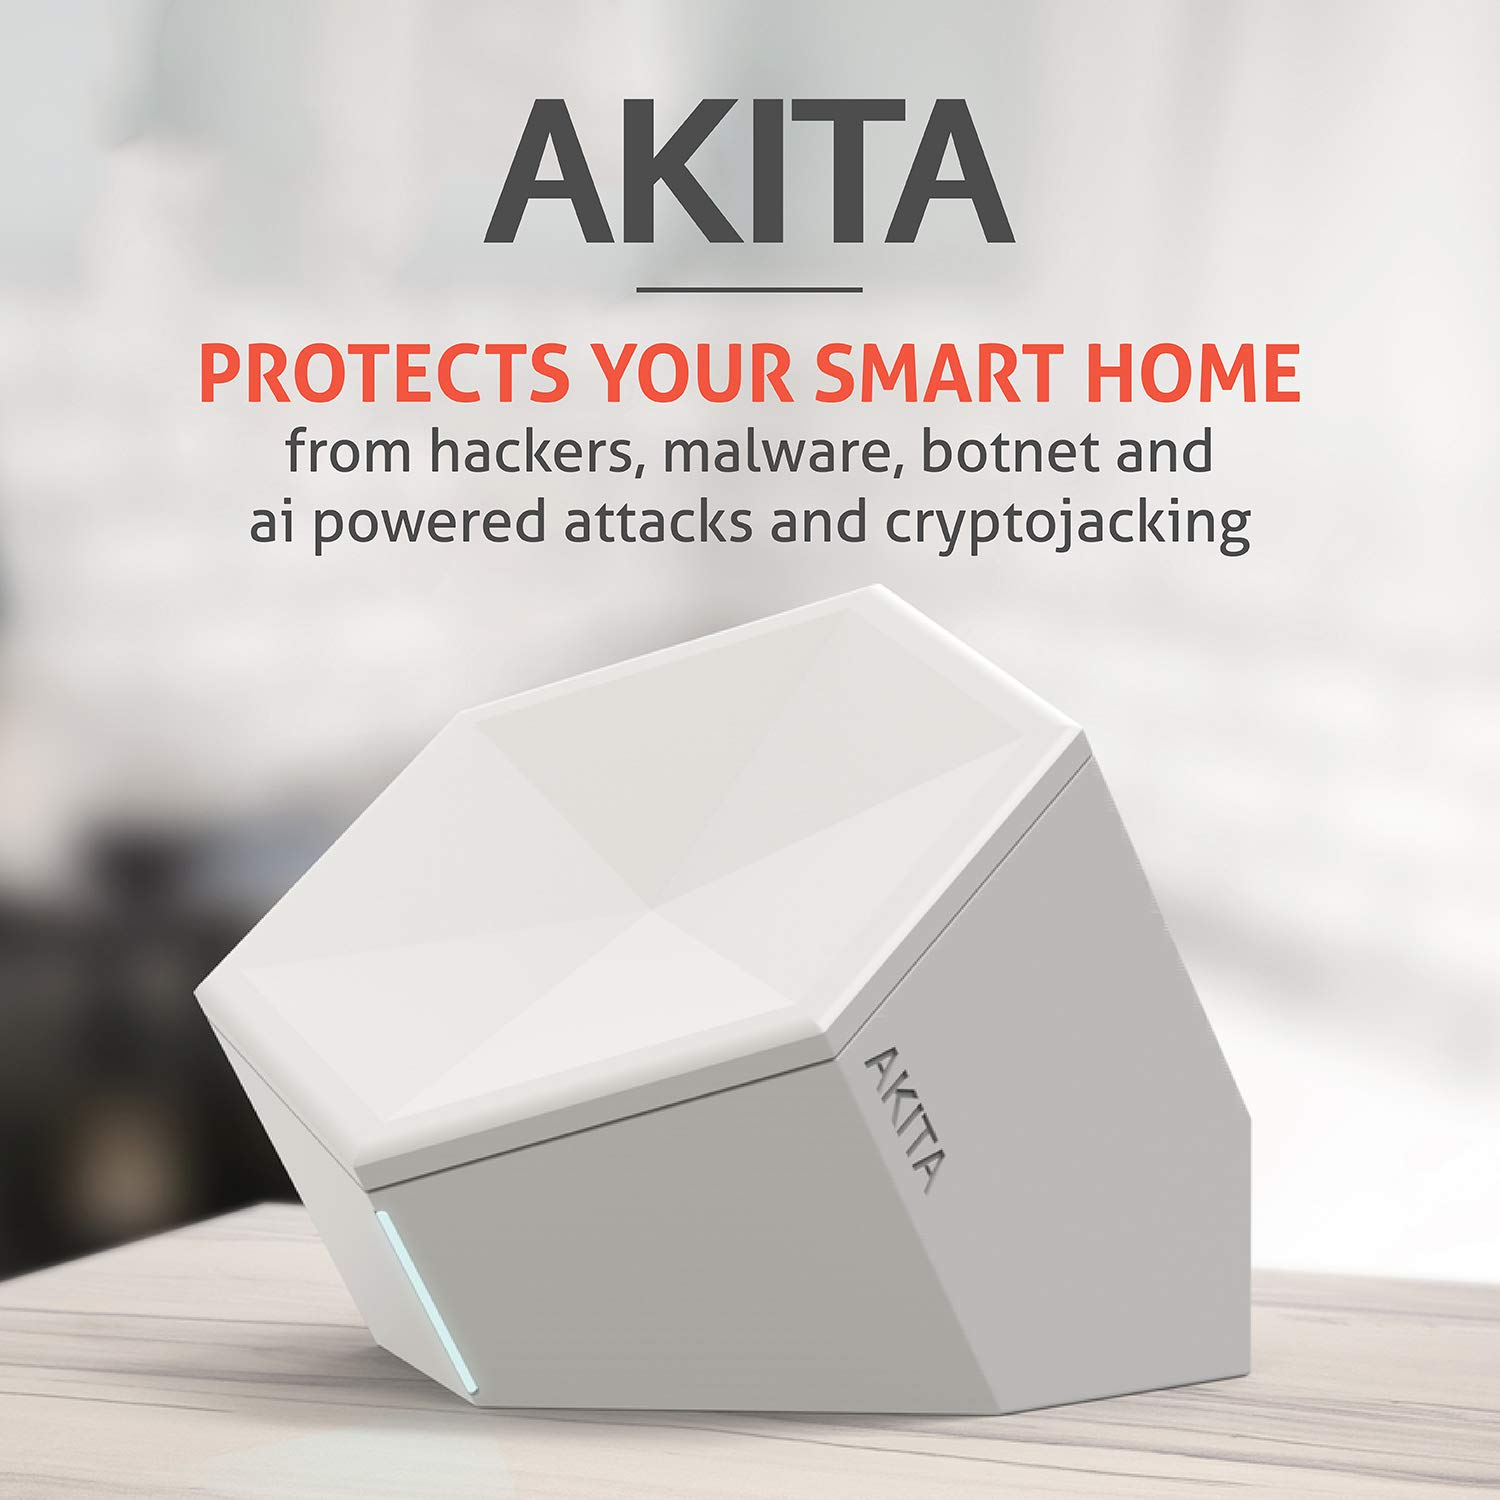 Akita - Smart Home Internet Security Safe Your Smart Home, Security Firewall for Home and Business Everytime, Protect Network from Viruses, Maiware, Botnet Attacks and Cryptojacking. by AKITA WatchDog